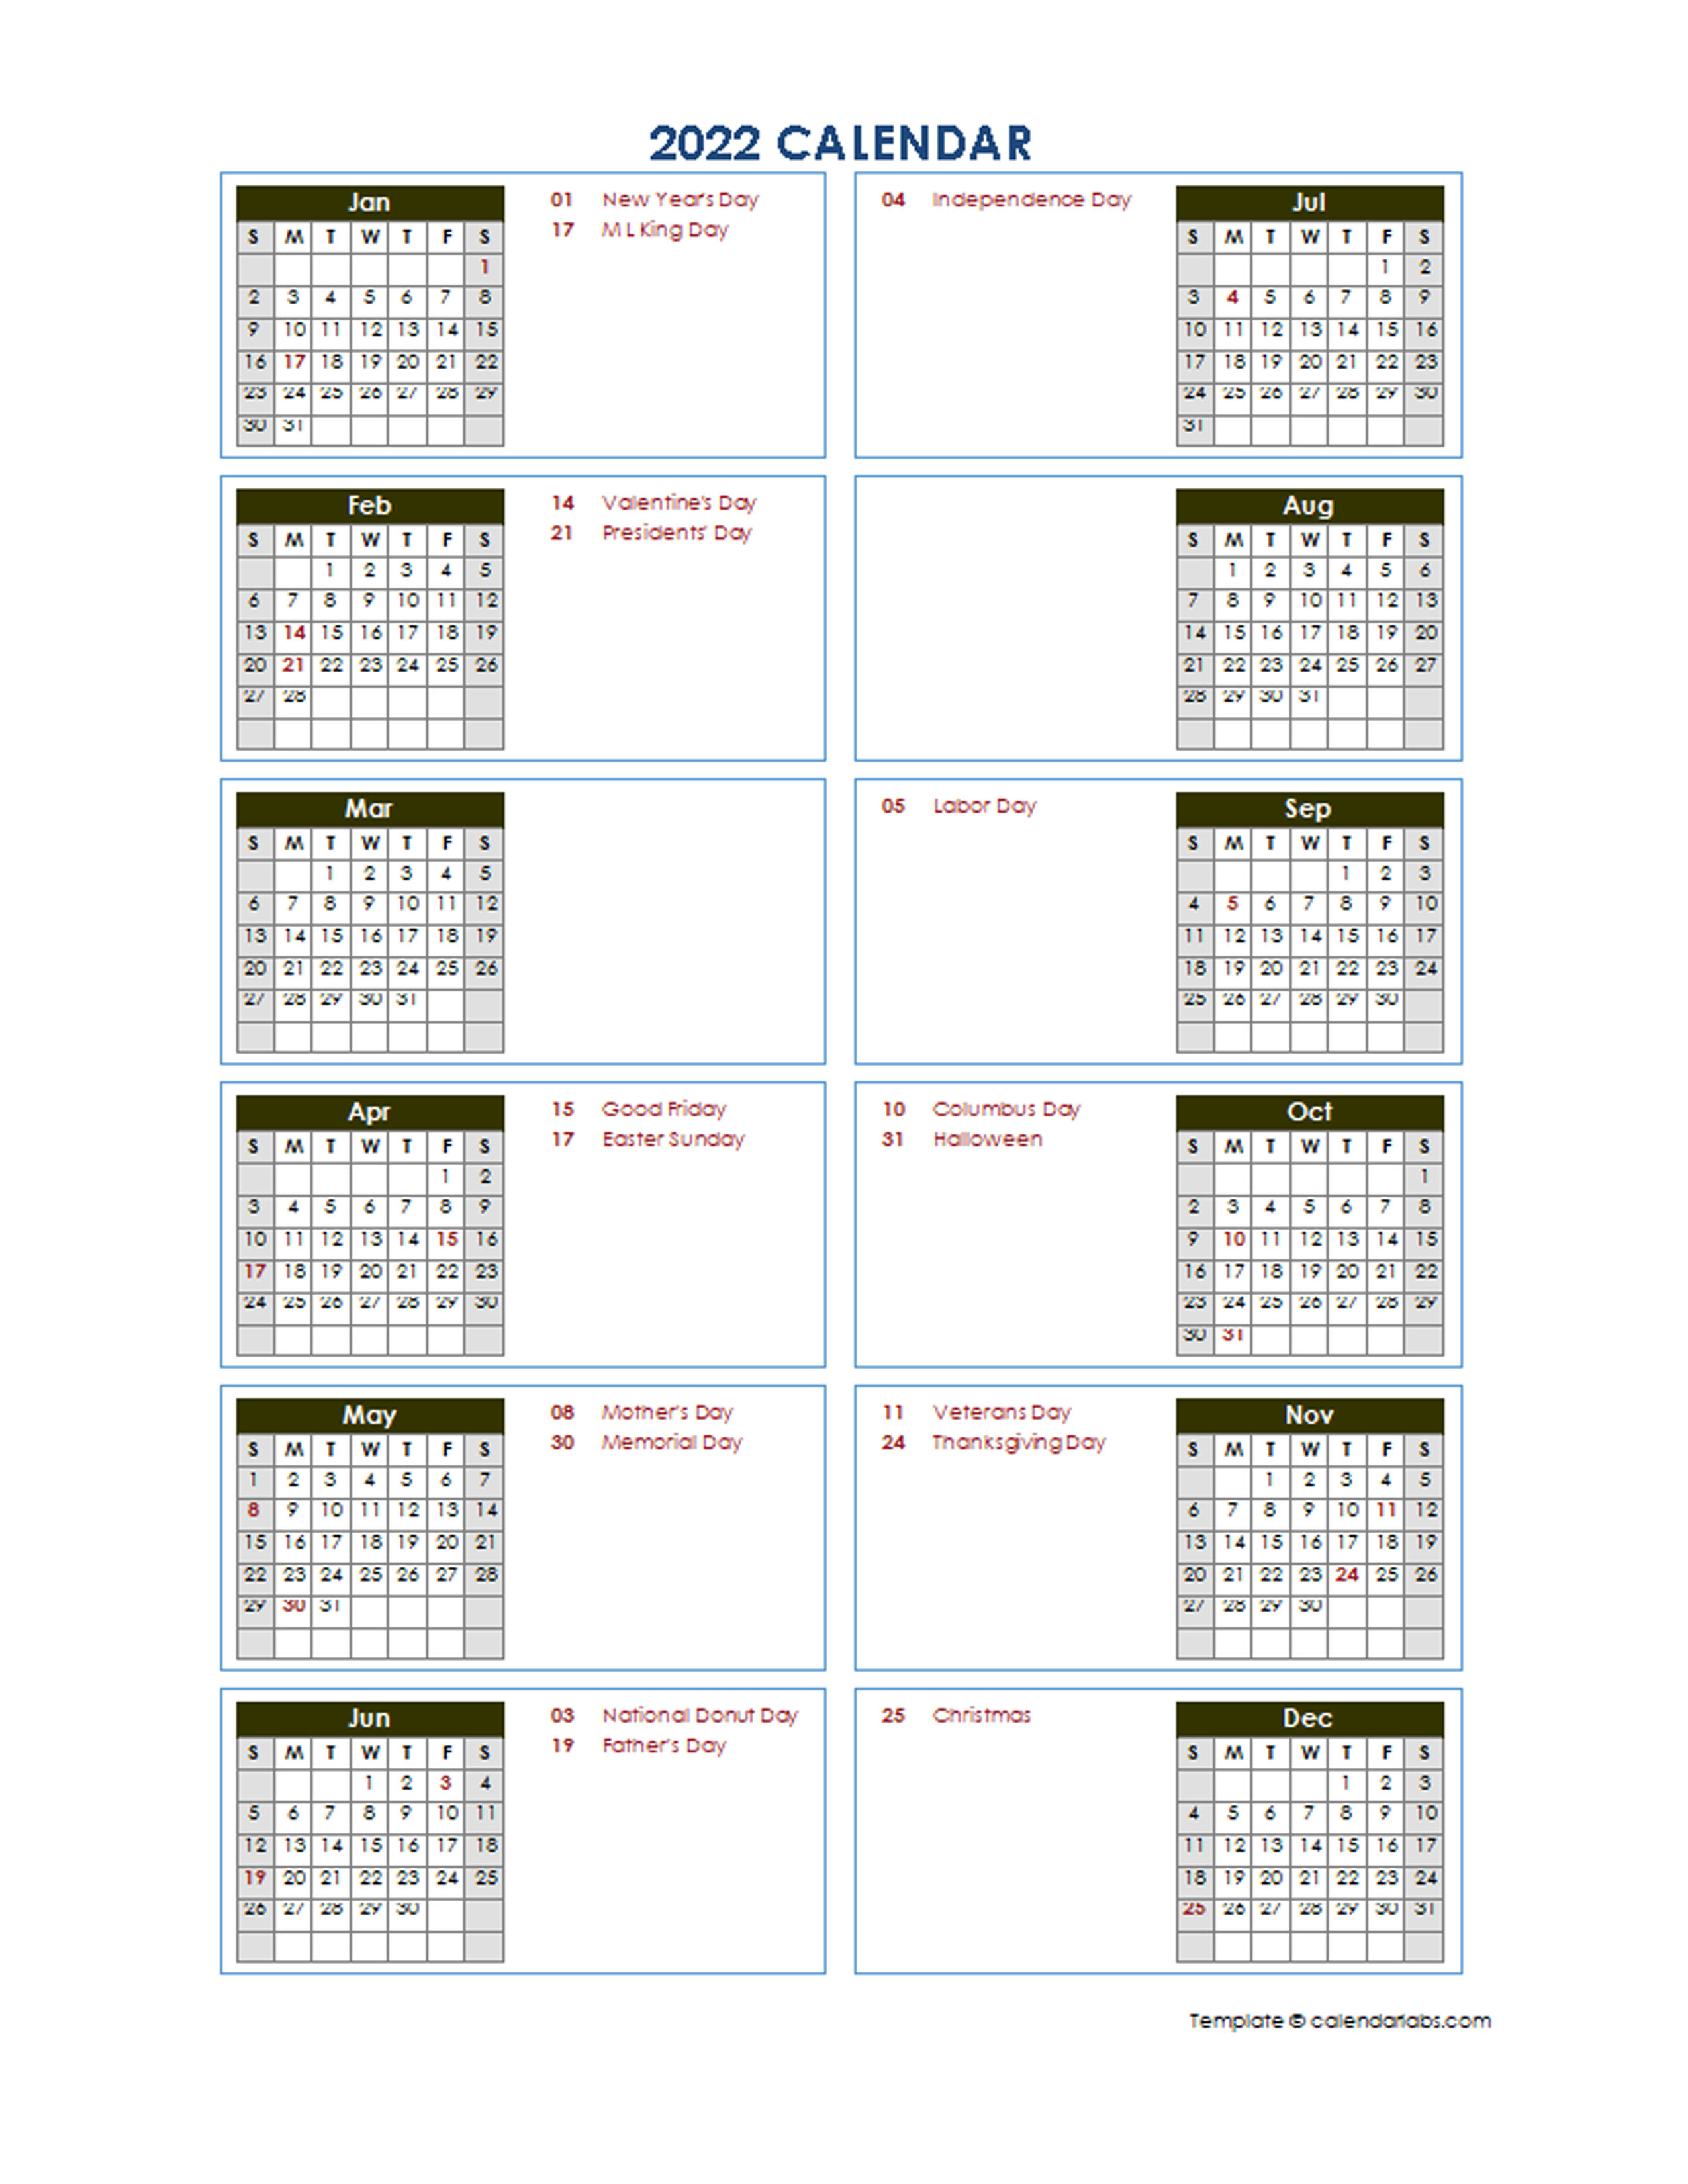 2022 Yearly Calendar Template Vertical Design - Free ...